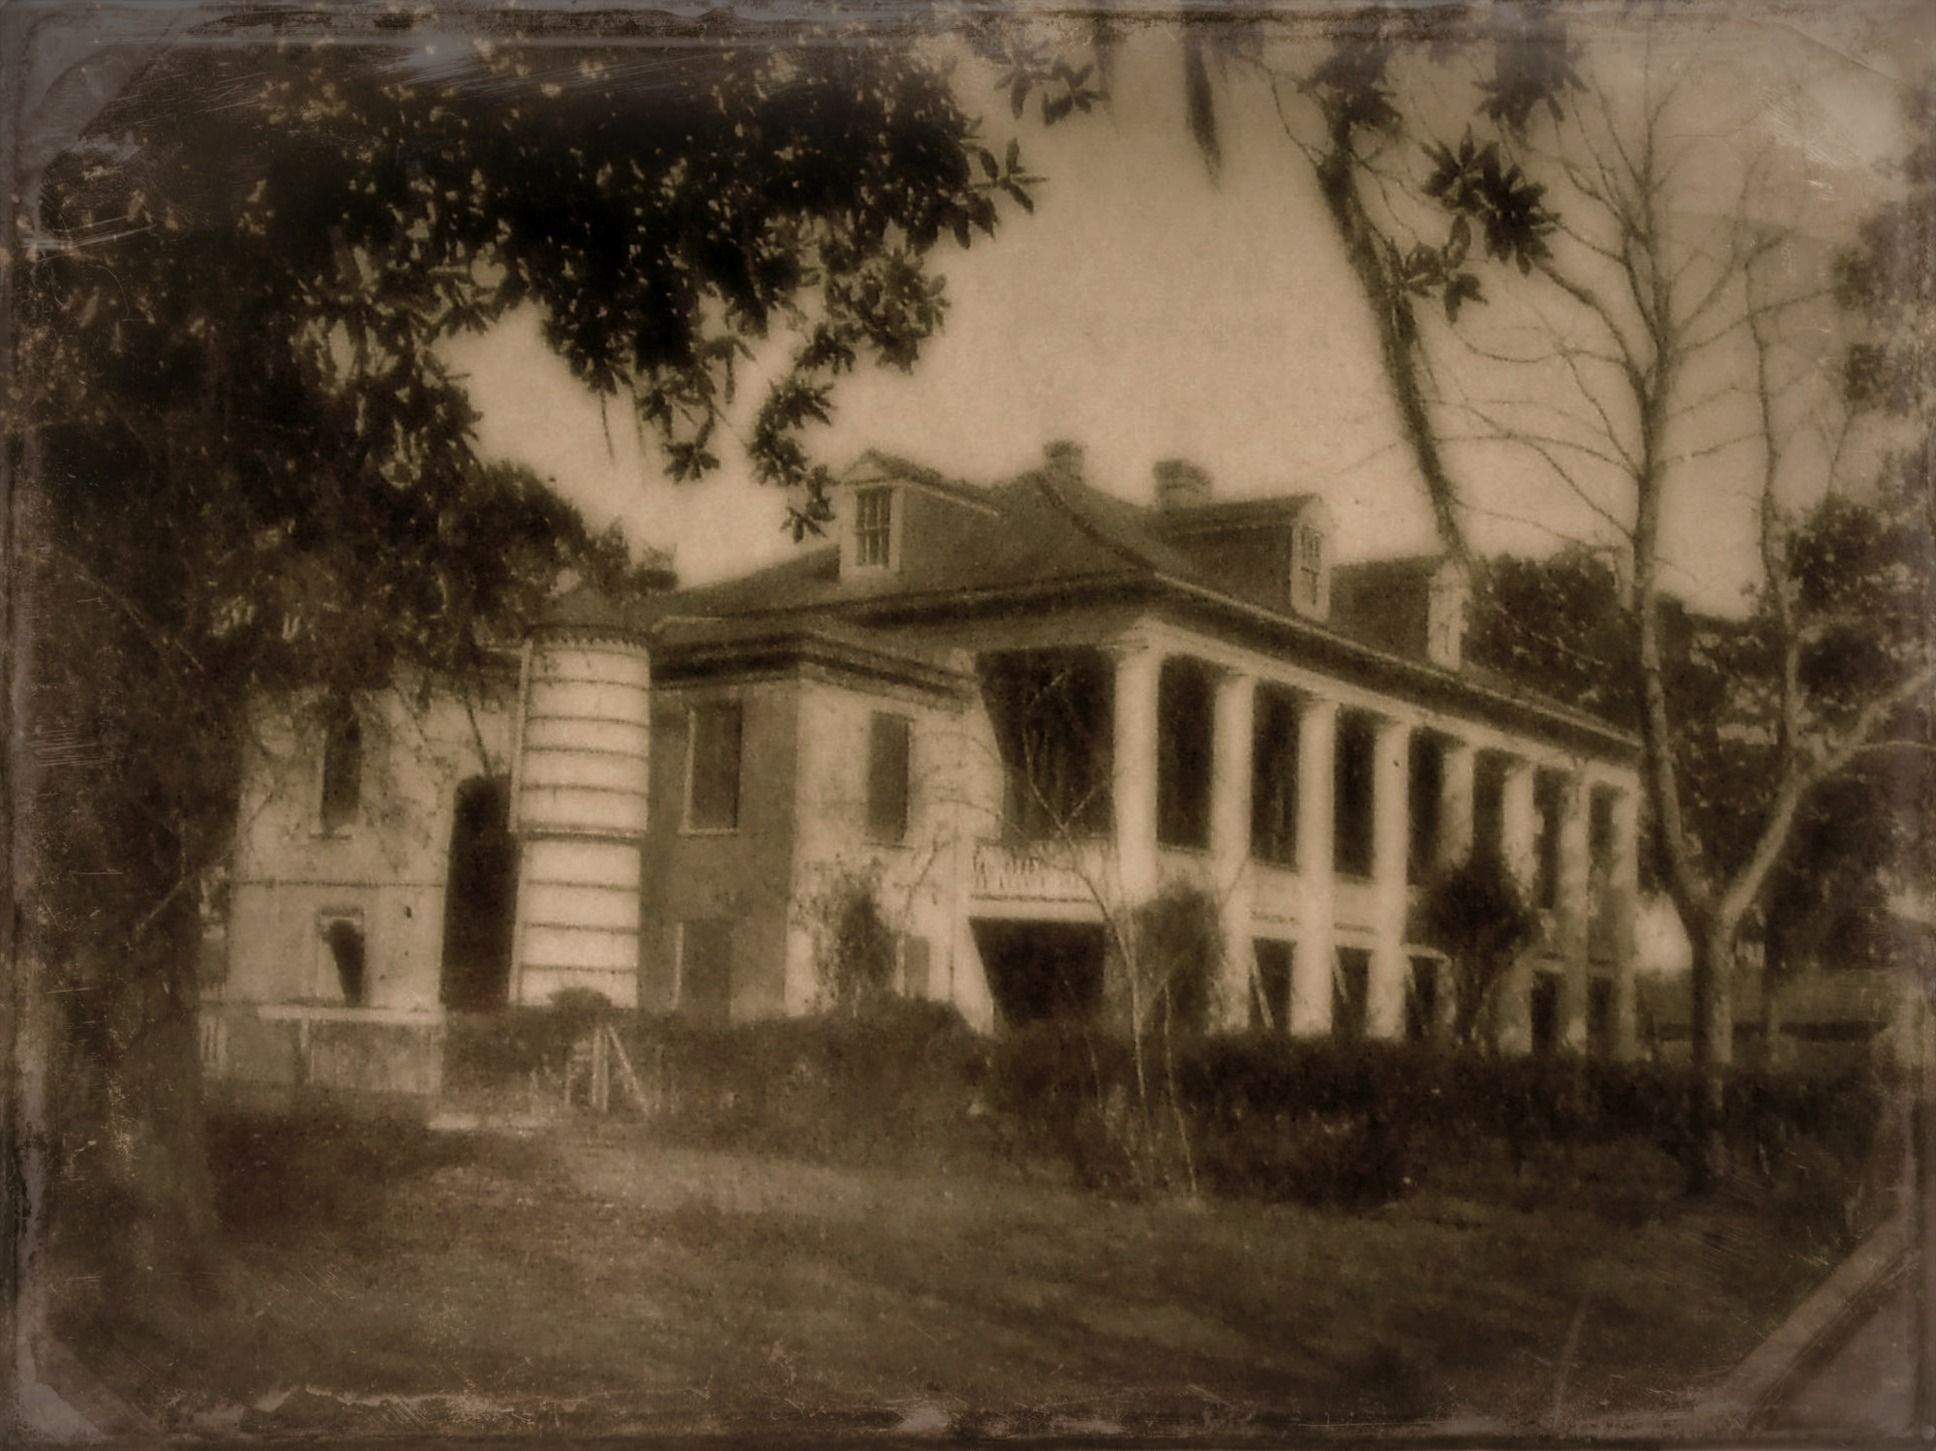 Jackson's Headquarters at Chalmette in the late 1800s